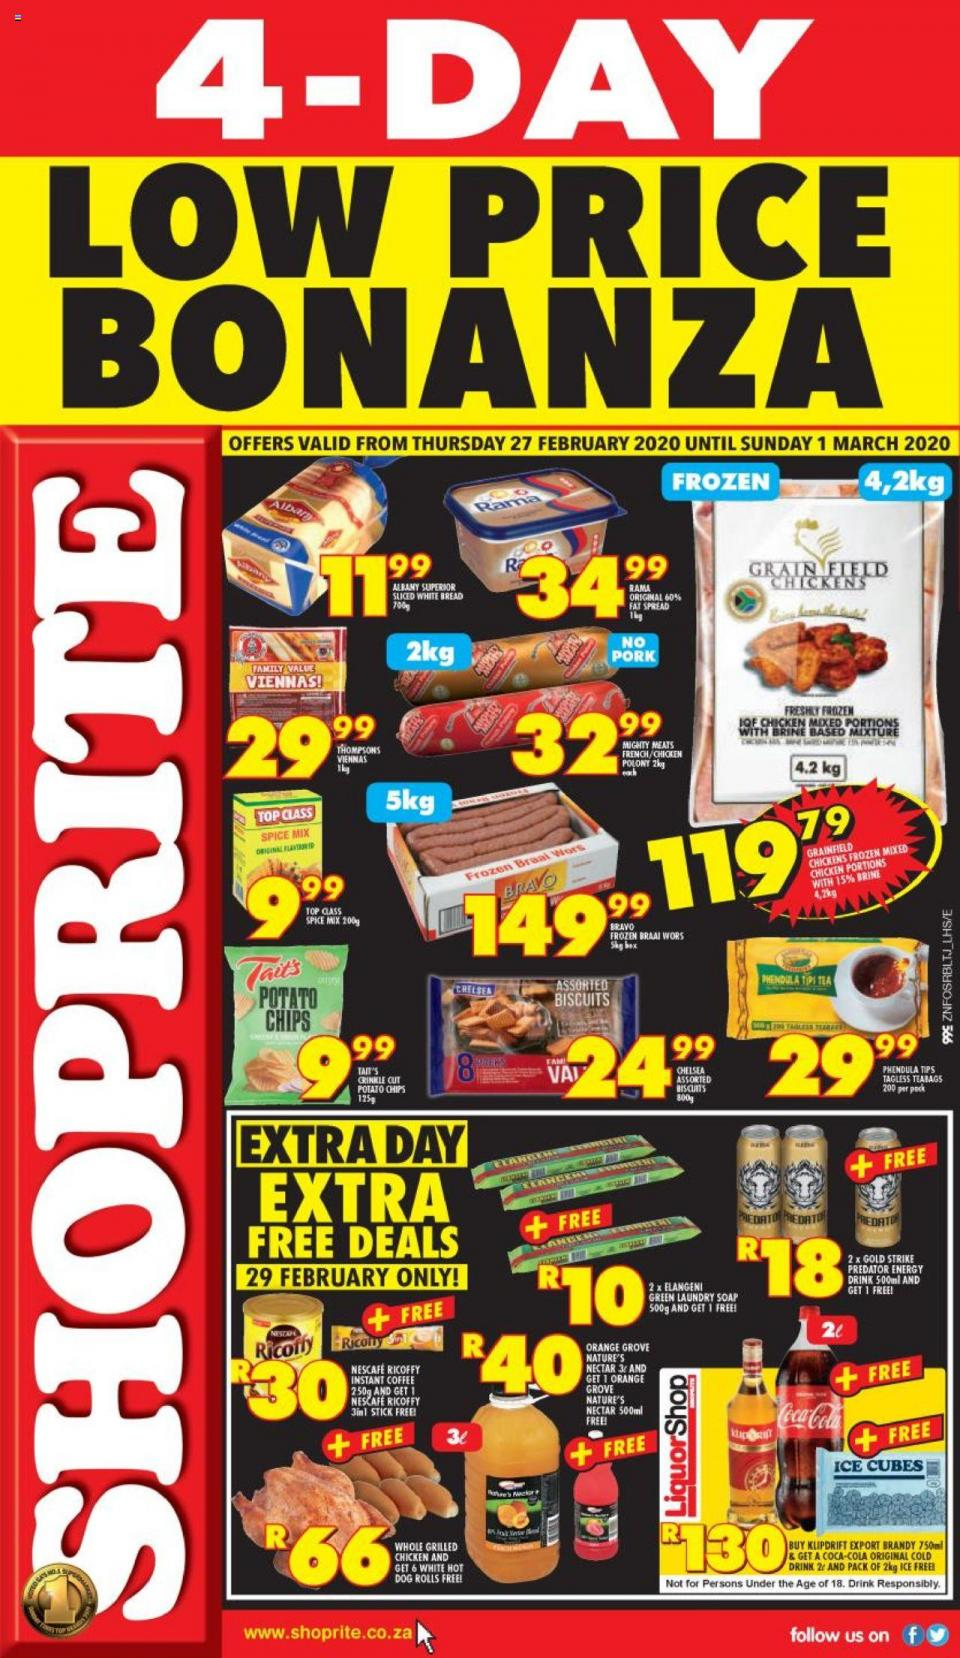 shoprite specials low price bonanza 27 february 2020